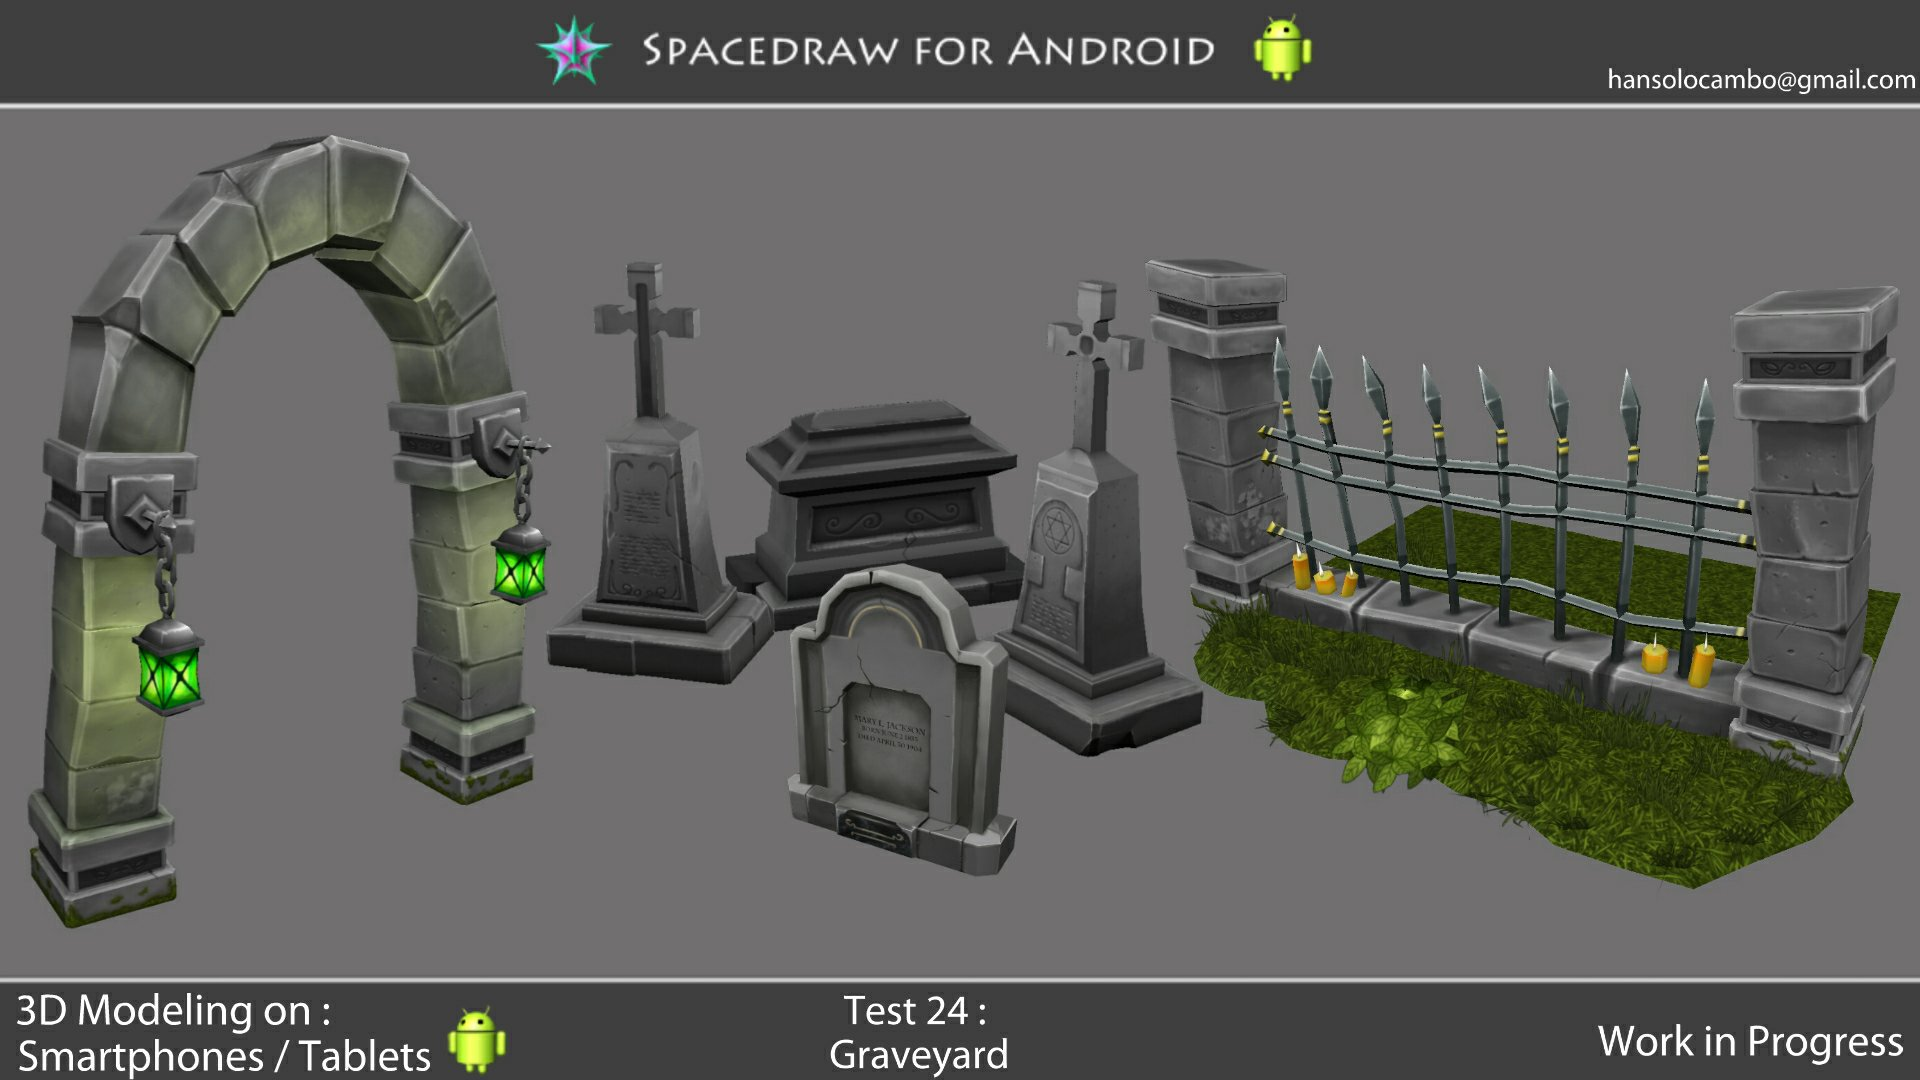 Spacedraw%2024-Graveyard.jpg